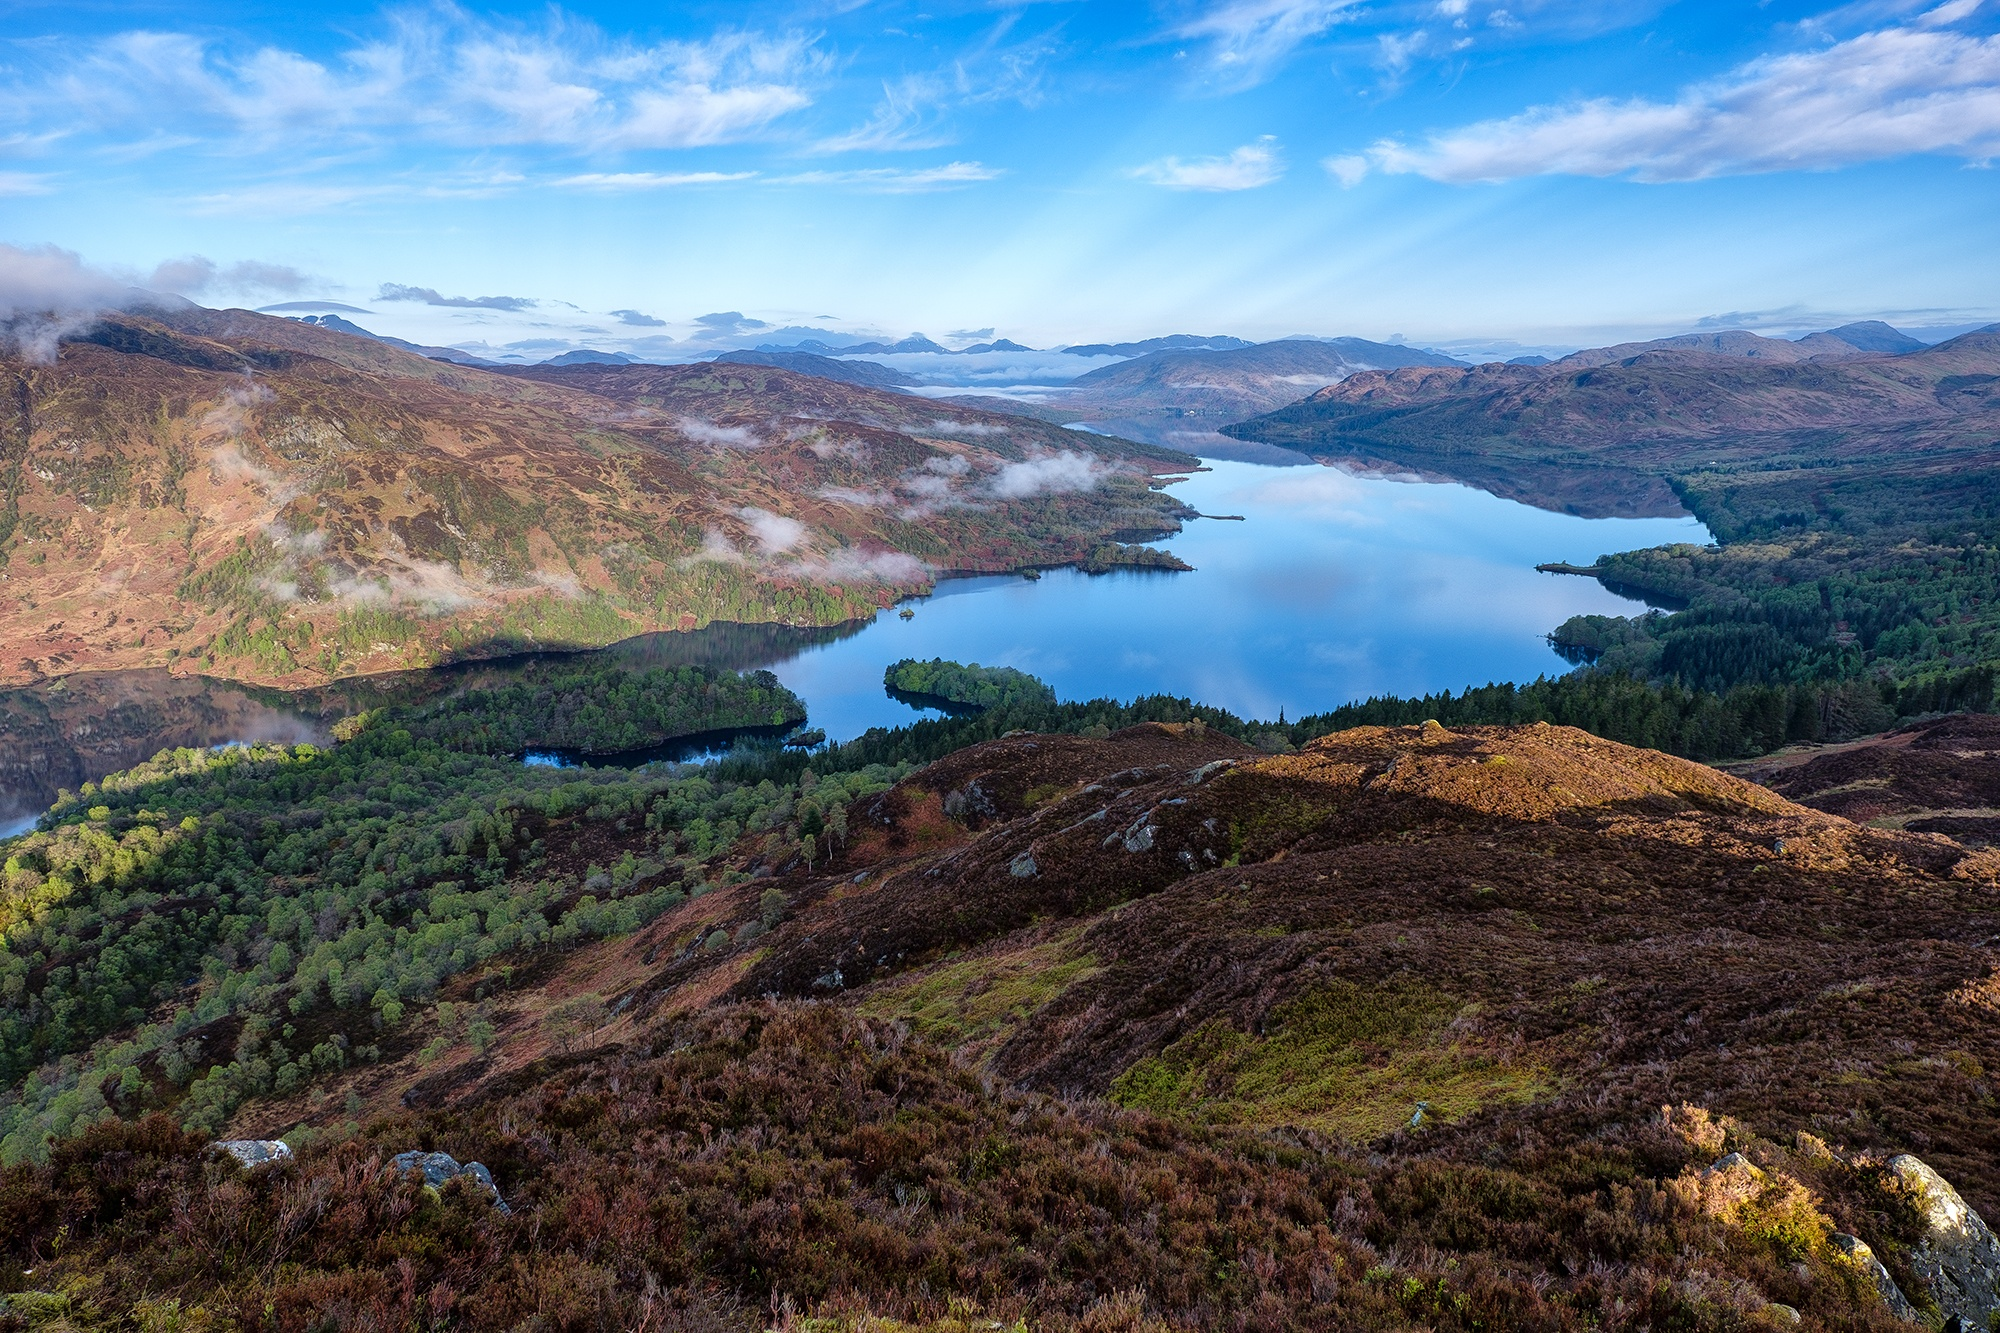 Daybreak on Loch Katrine and the Arrochar Alps, Trossachs, Scotland - XH1 +16-55mm